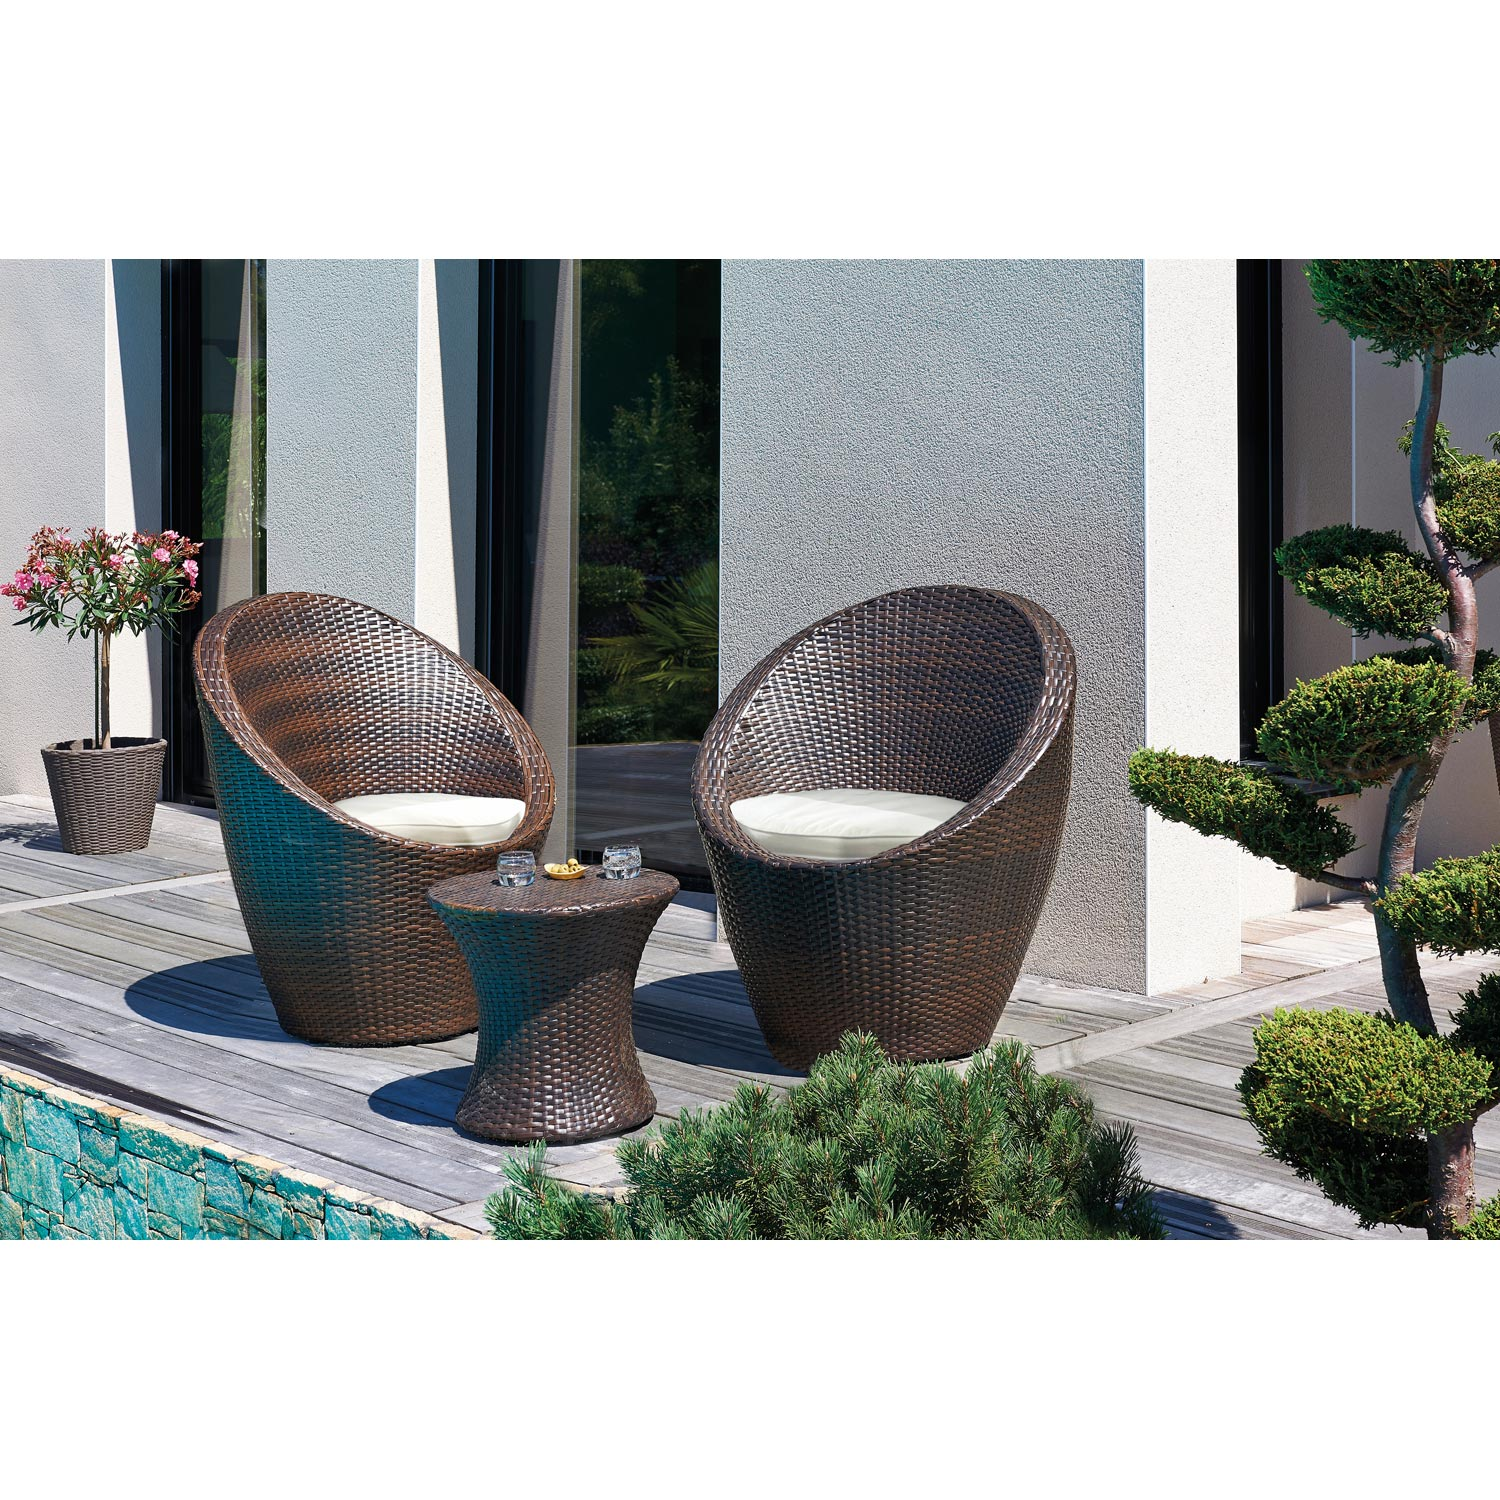 Salon bas de jardin totem r sine tress e chocolat 1 table for Table et fauteuil jardin